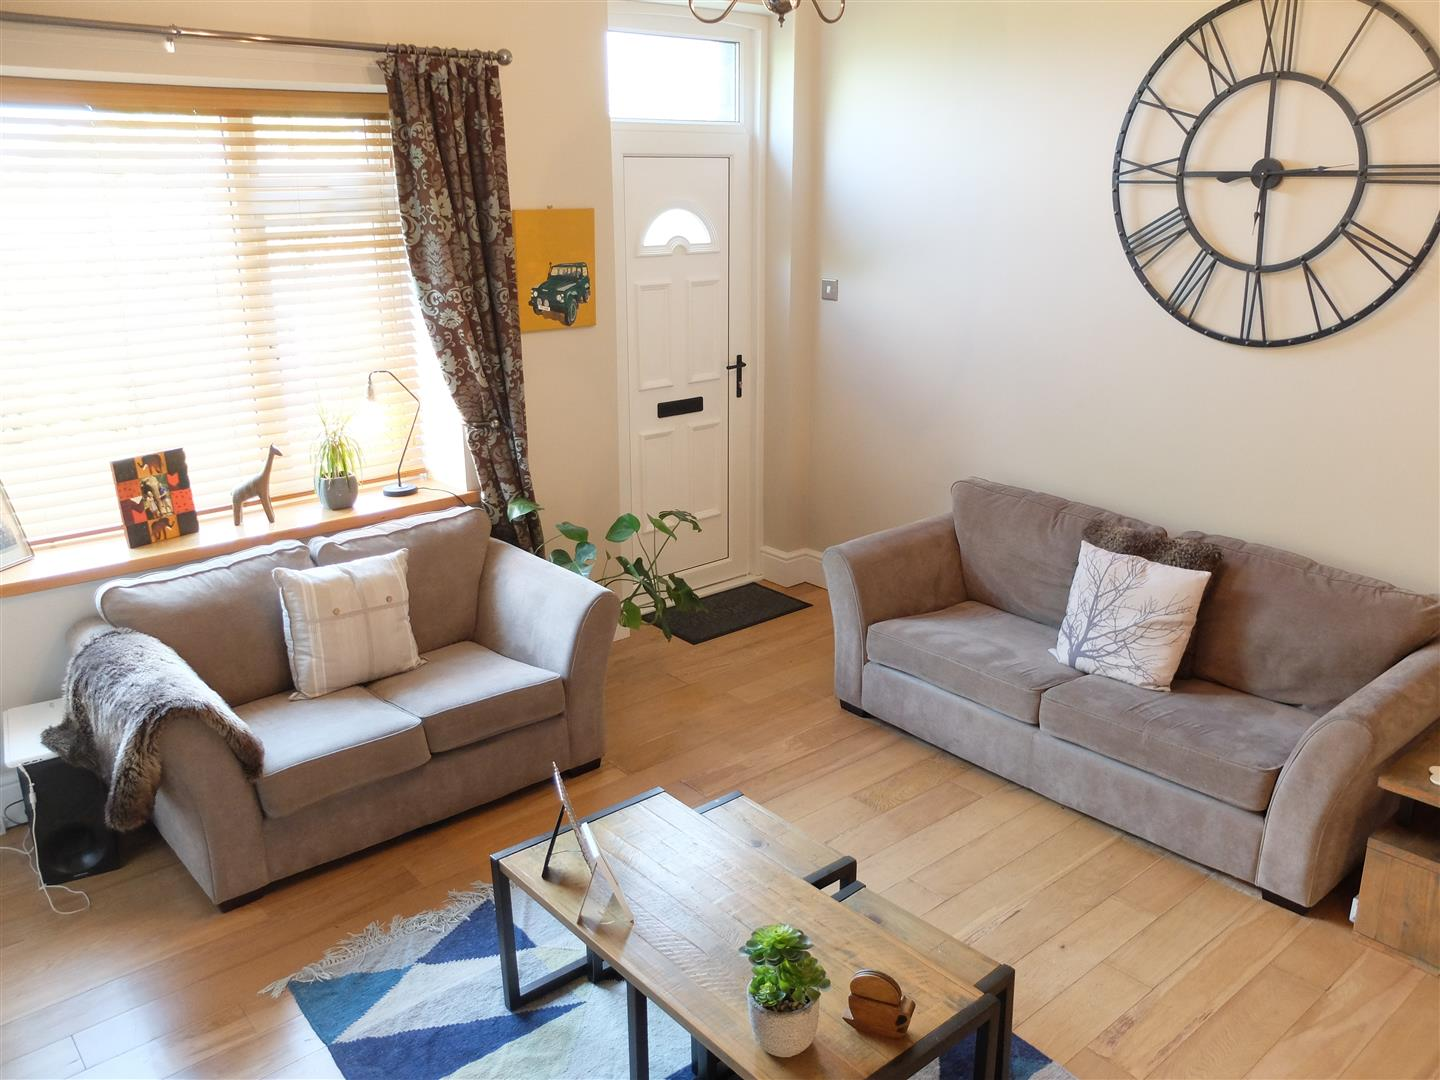 2 Bedrooms House - Terraced On Sale 7, Caledonian Buildings Etterby Road Carlisle